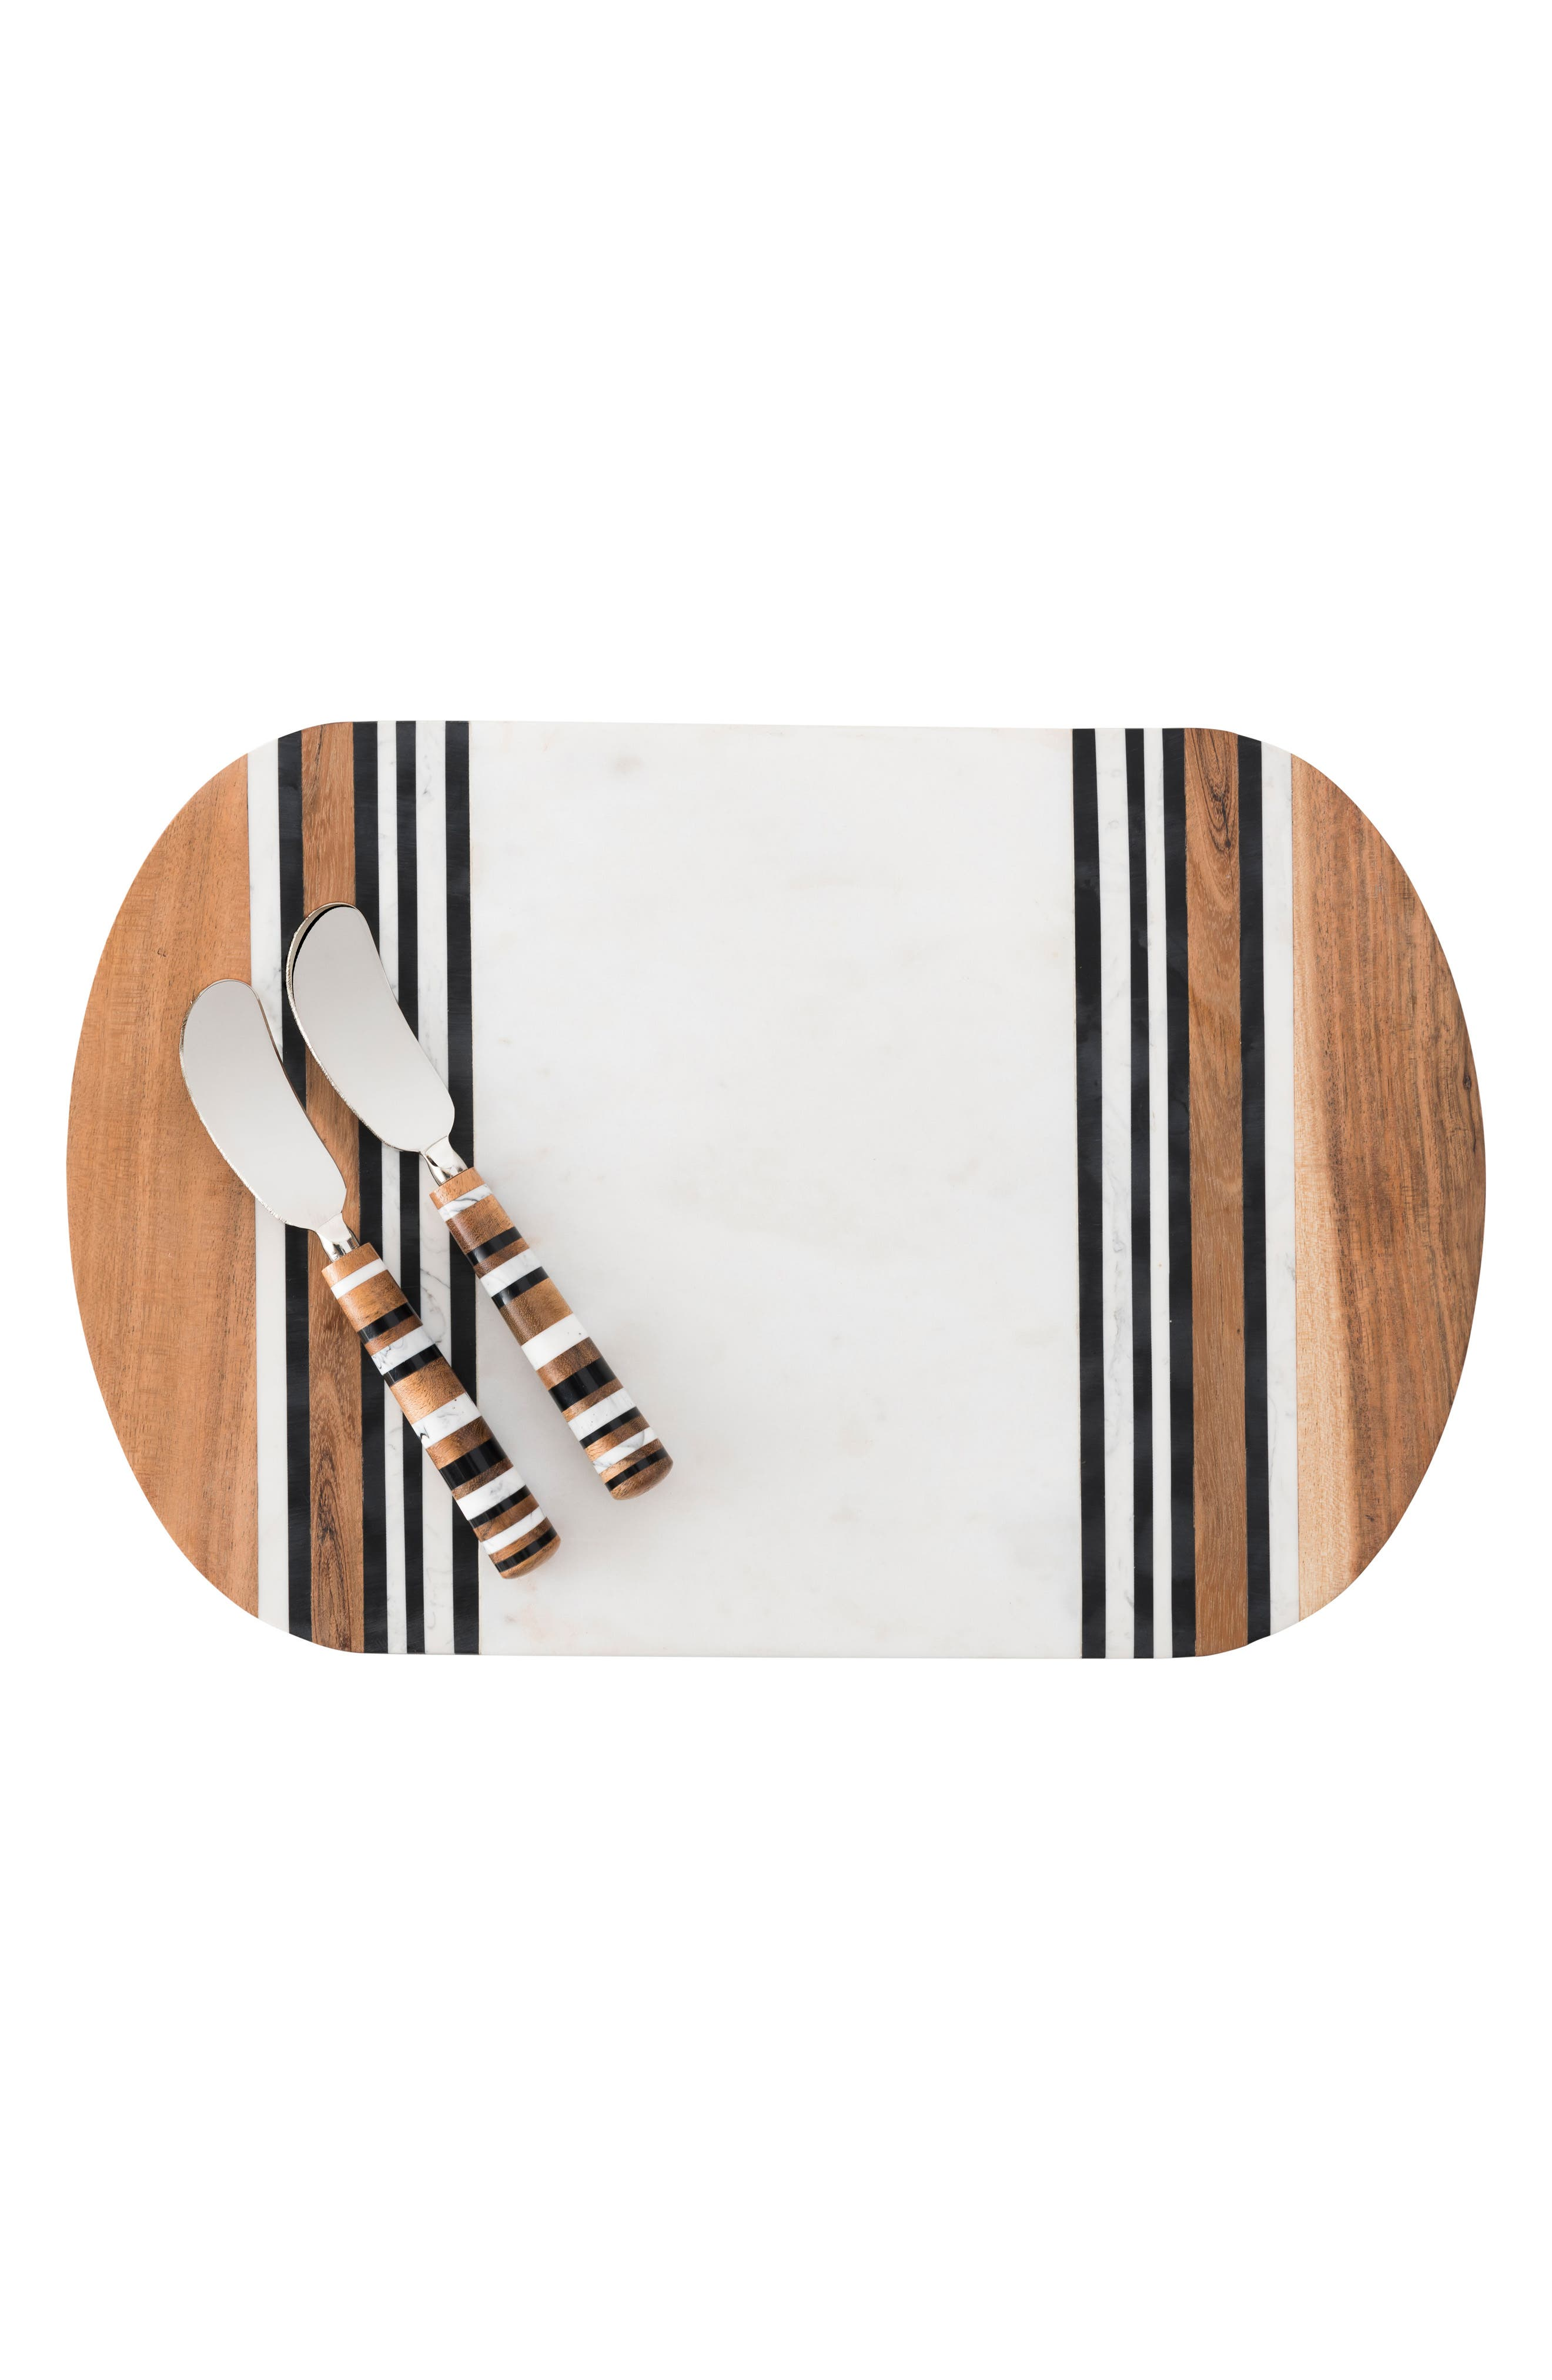 Stonewood Stripe Serving Board & Spreaders,                         Main,                         color, 200